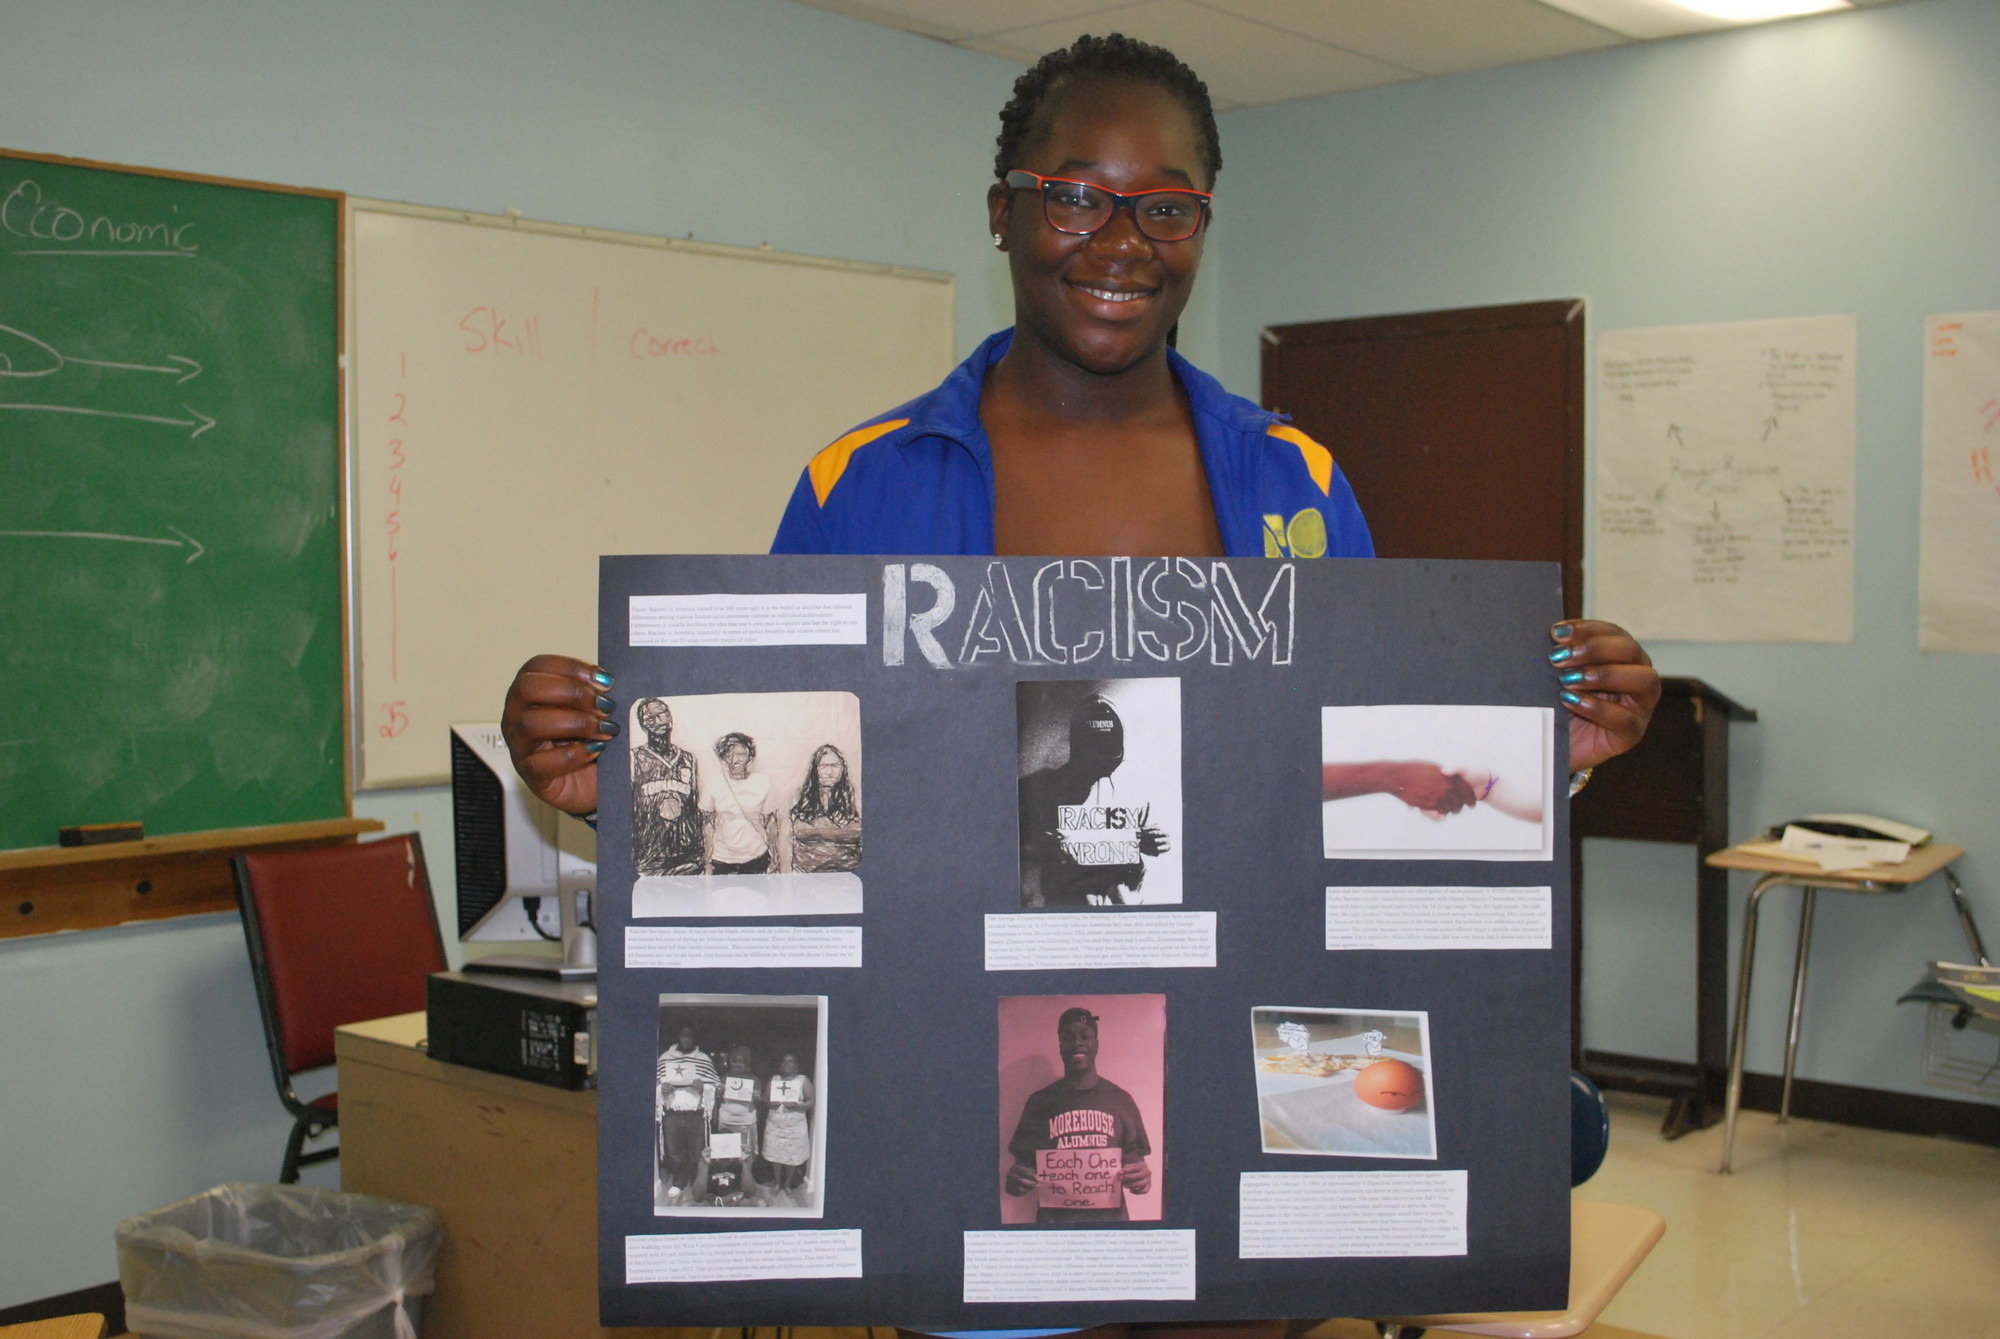 In Nathalie Nelson's Advanced Placement English prep class for 11th- and 12-graders, senior Sigourney Nelson (no relation) displayed her project on the perception of racism.